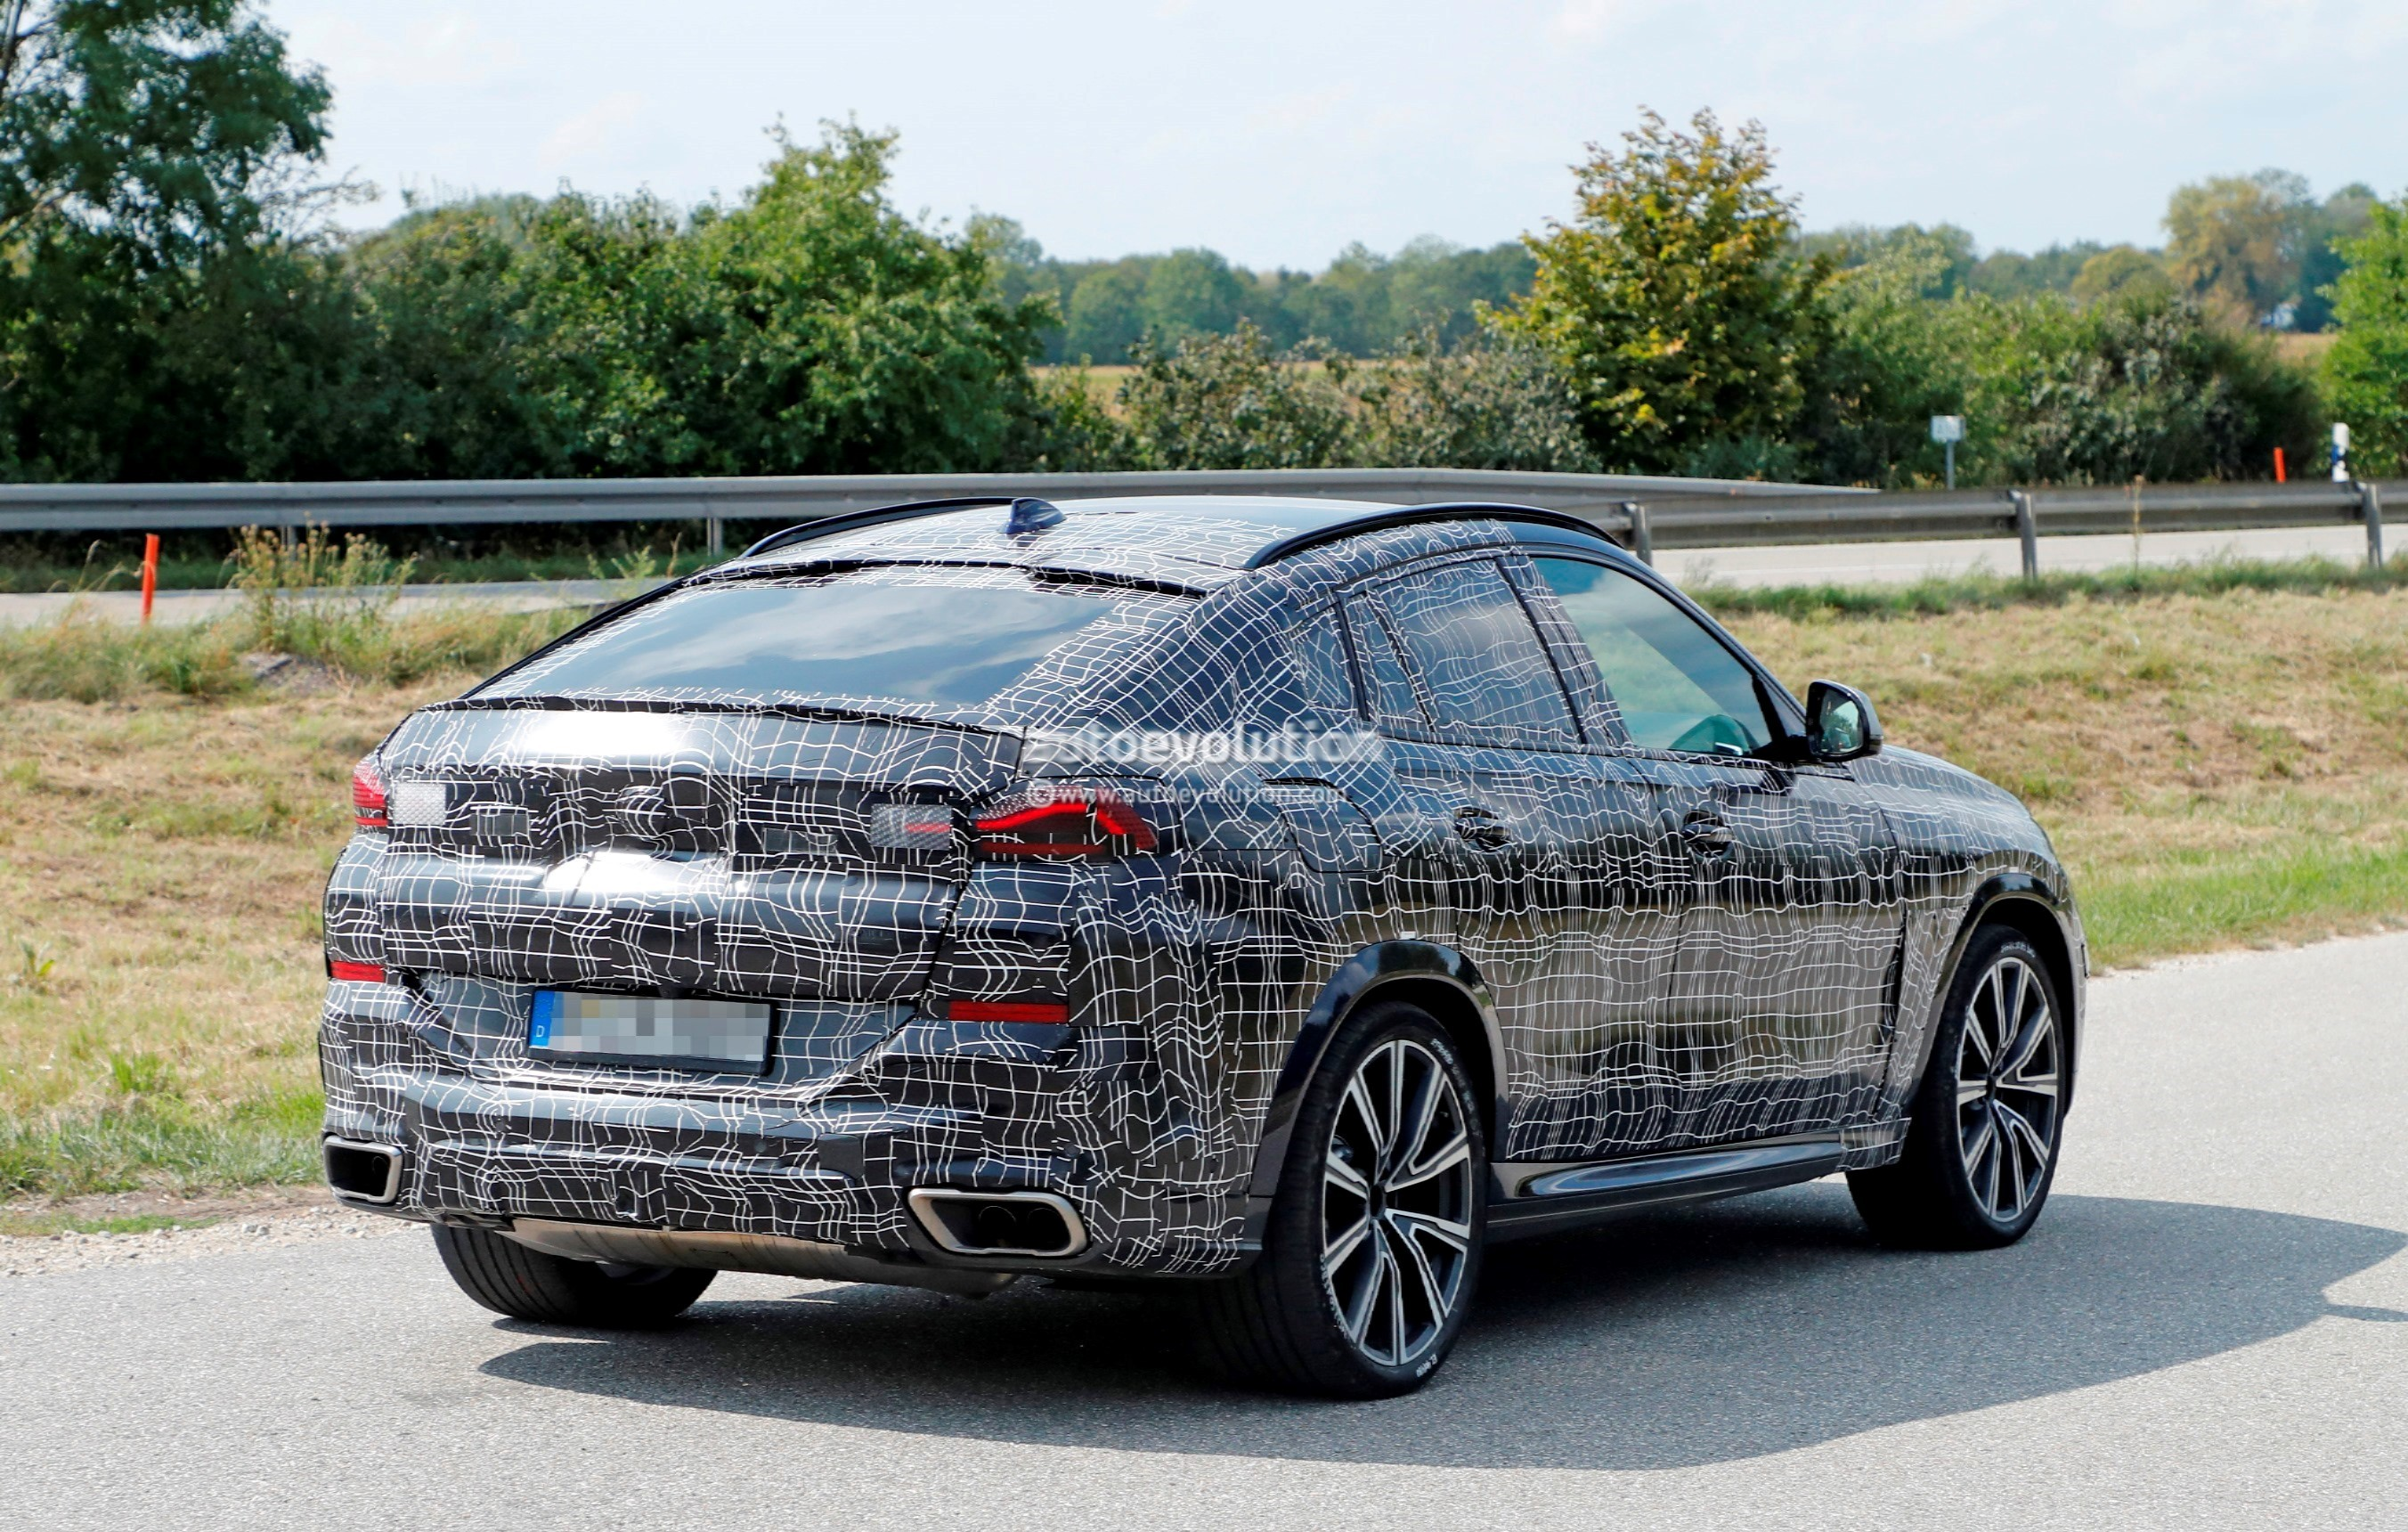 2020 BMW X6 Spied Together With X4, Looks Predictable ...